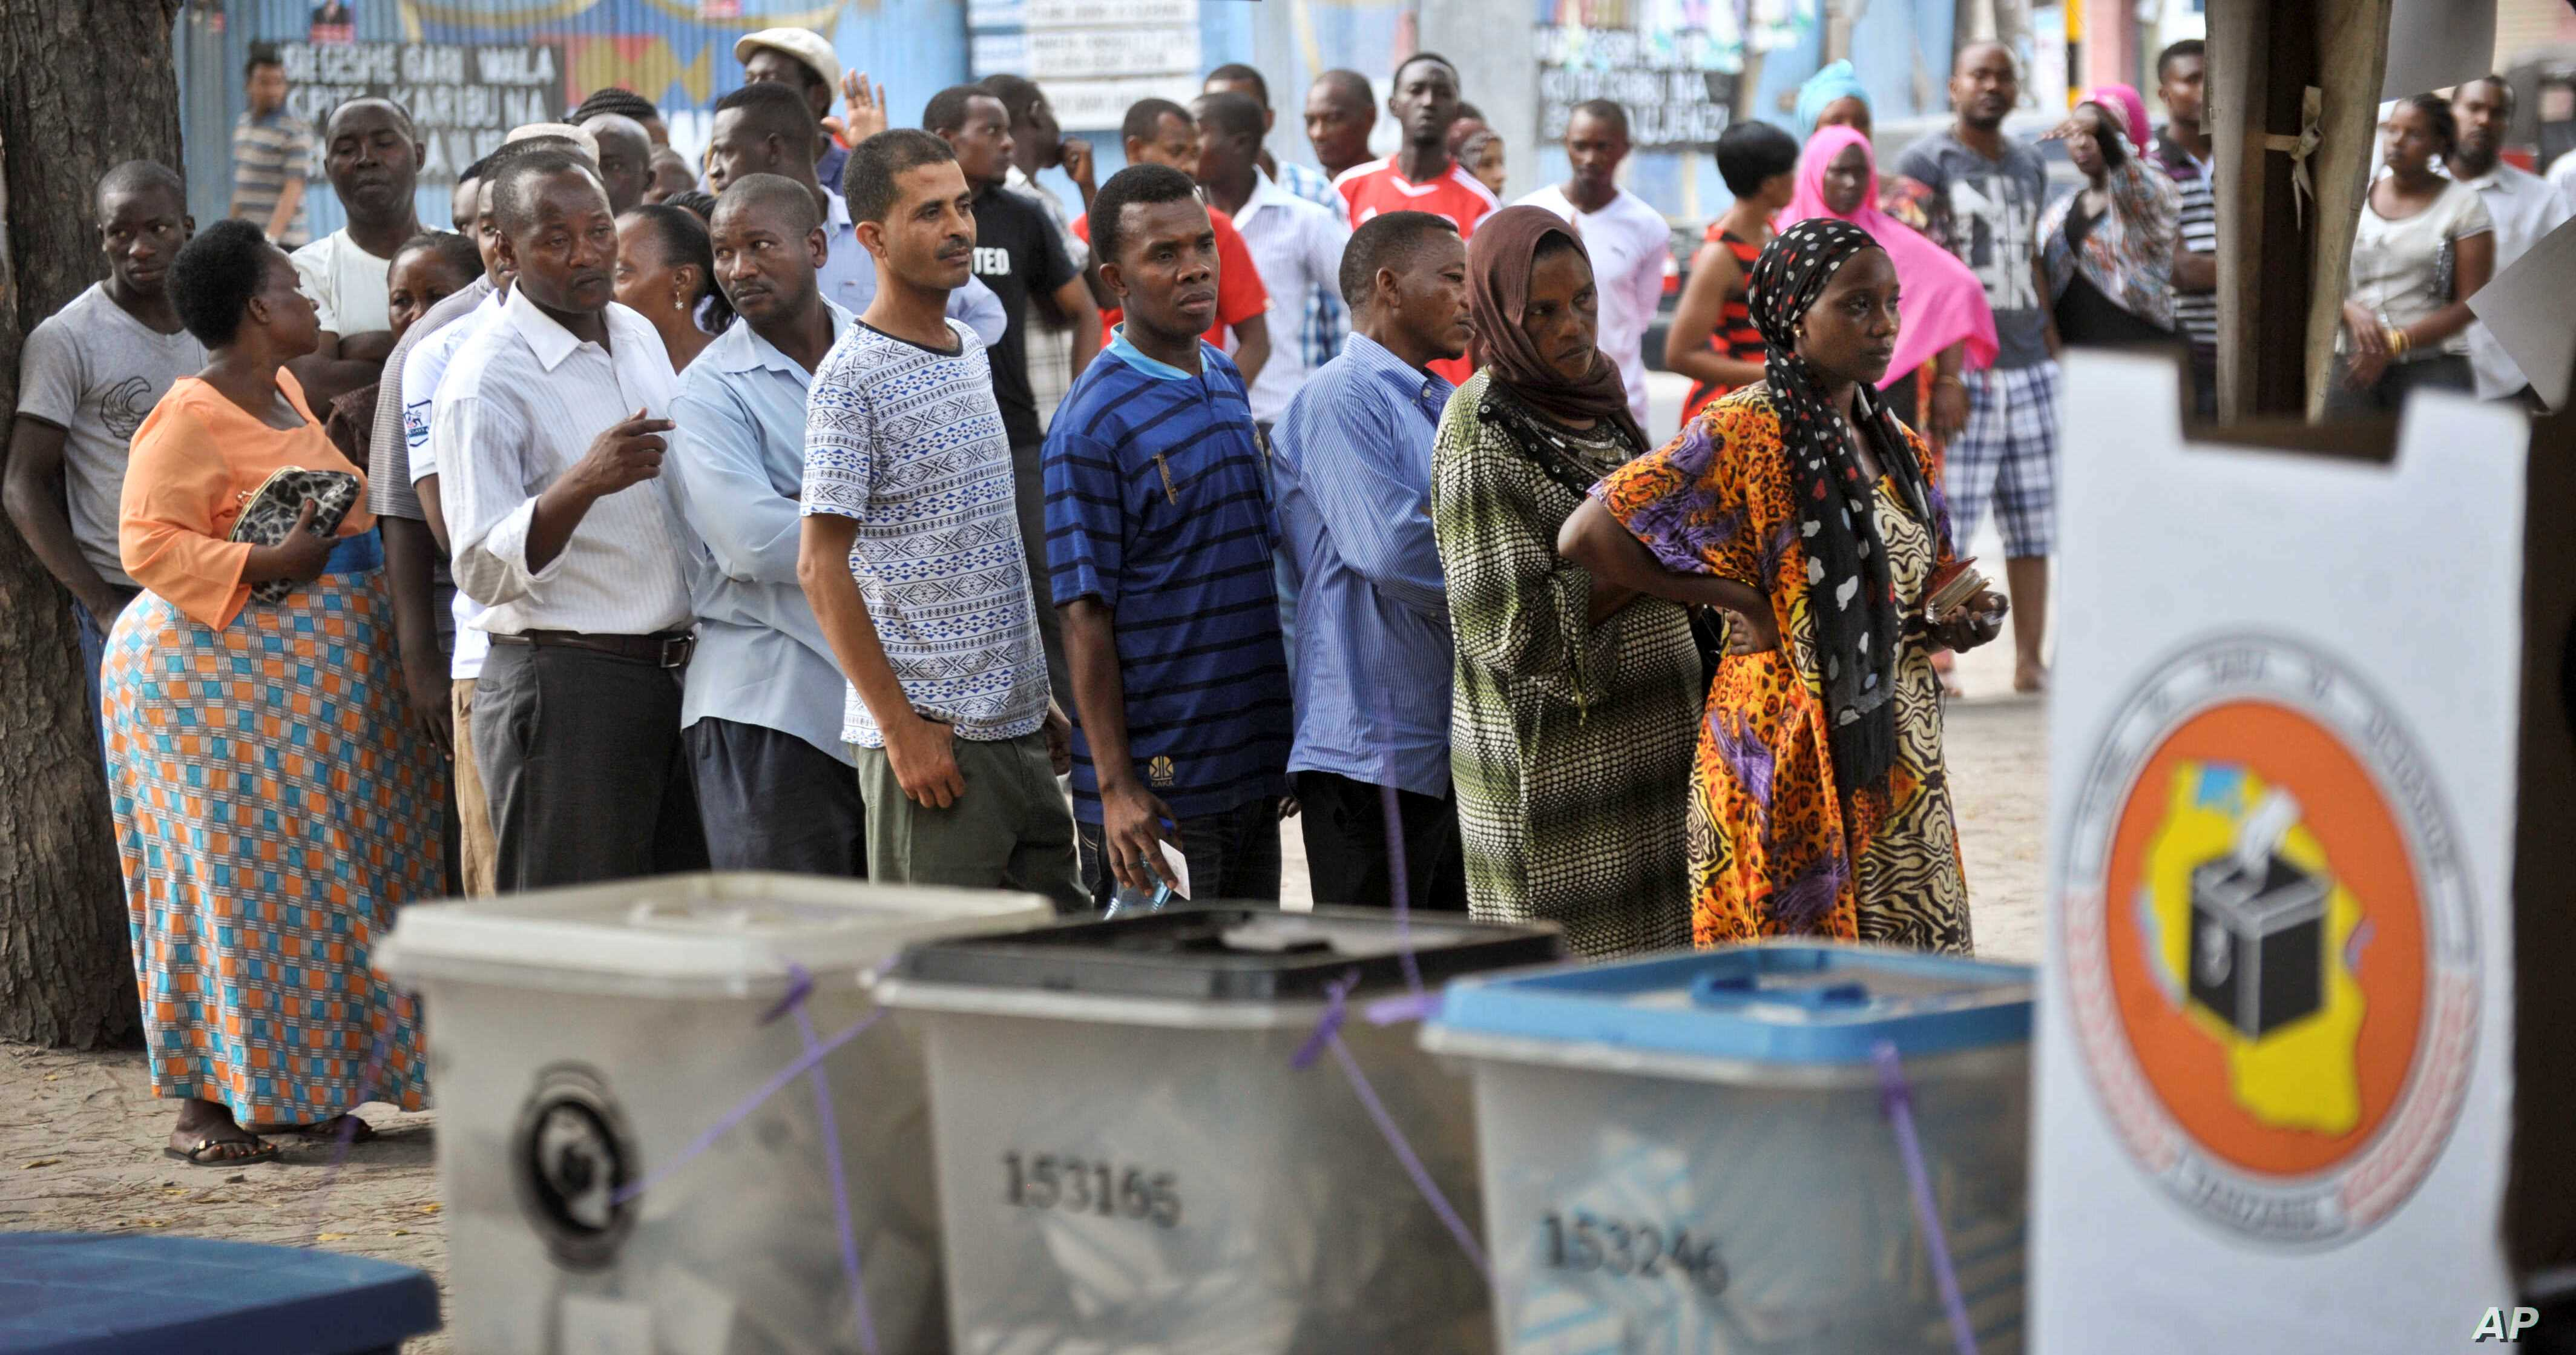 The 2020 election race and servant role leadership in Tanzania